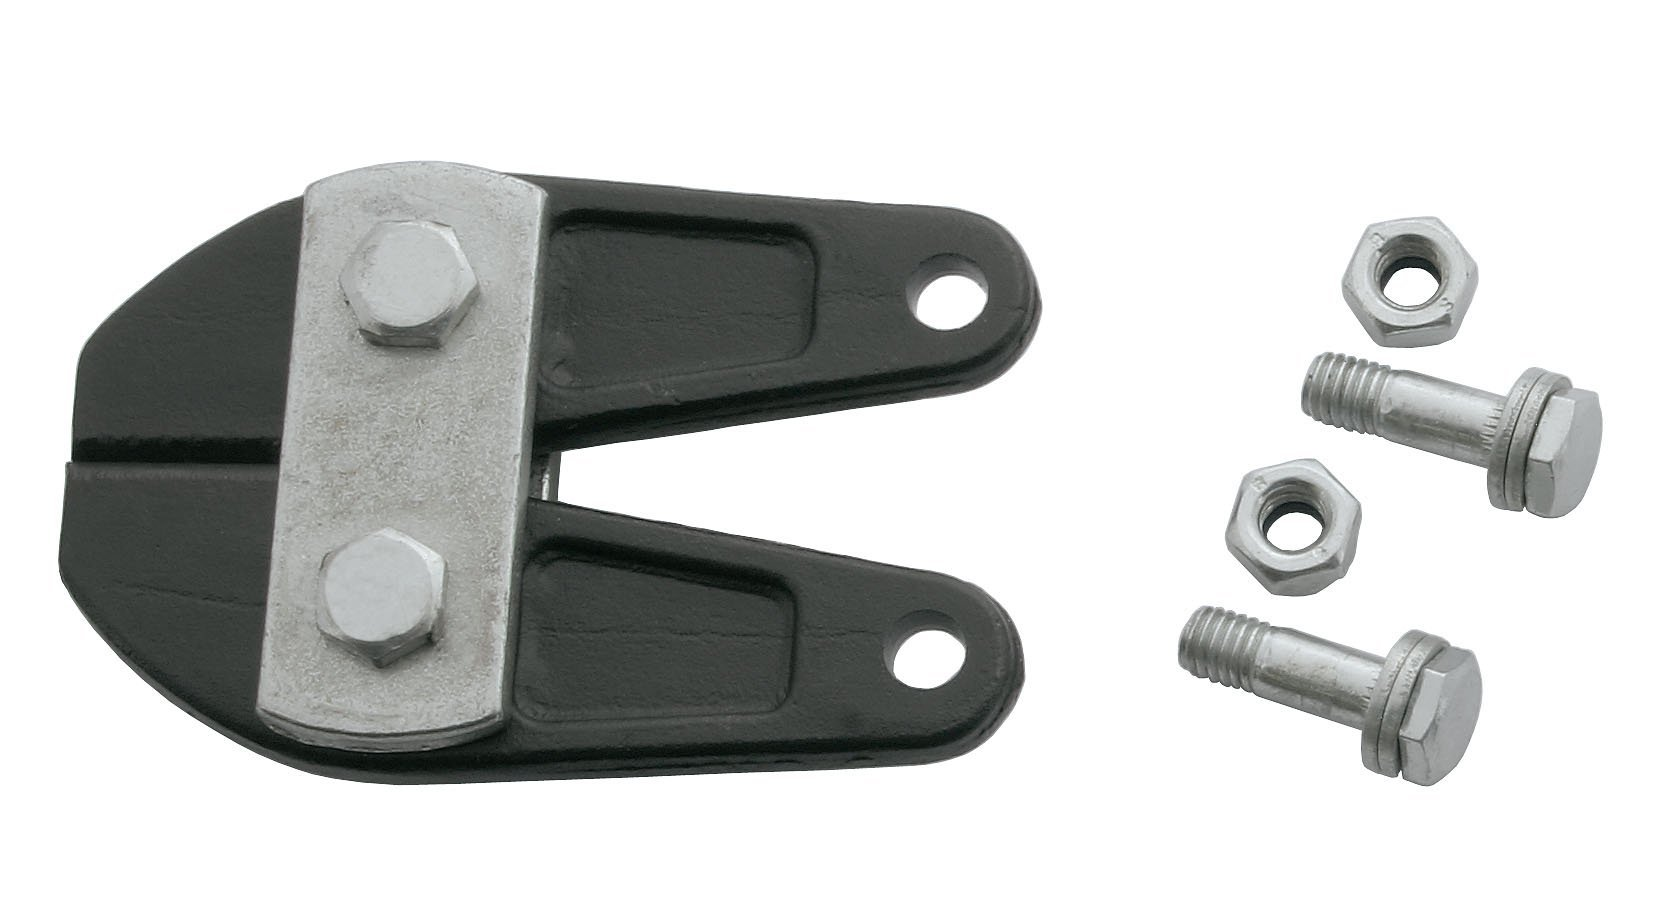 Elora 288009016000 Spare Jaw for Bolt Cutter 288E-800